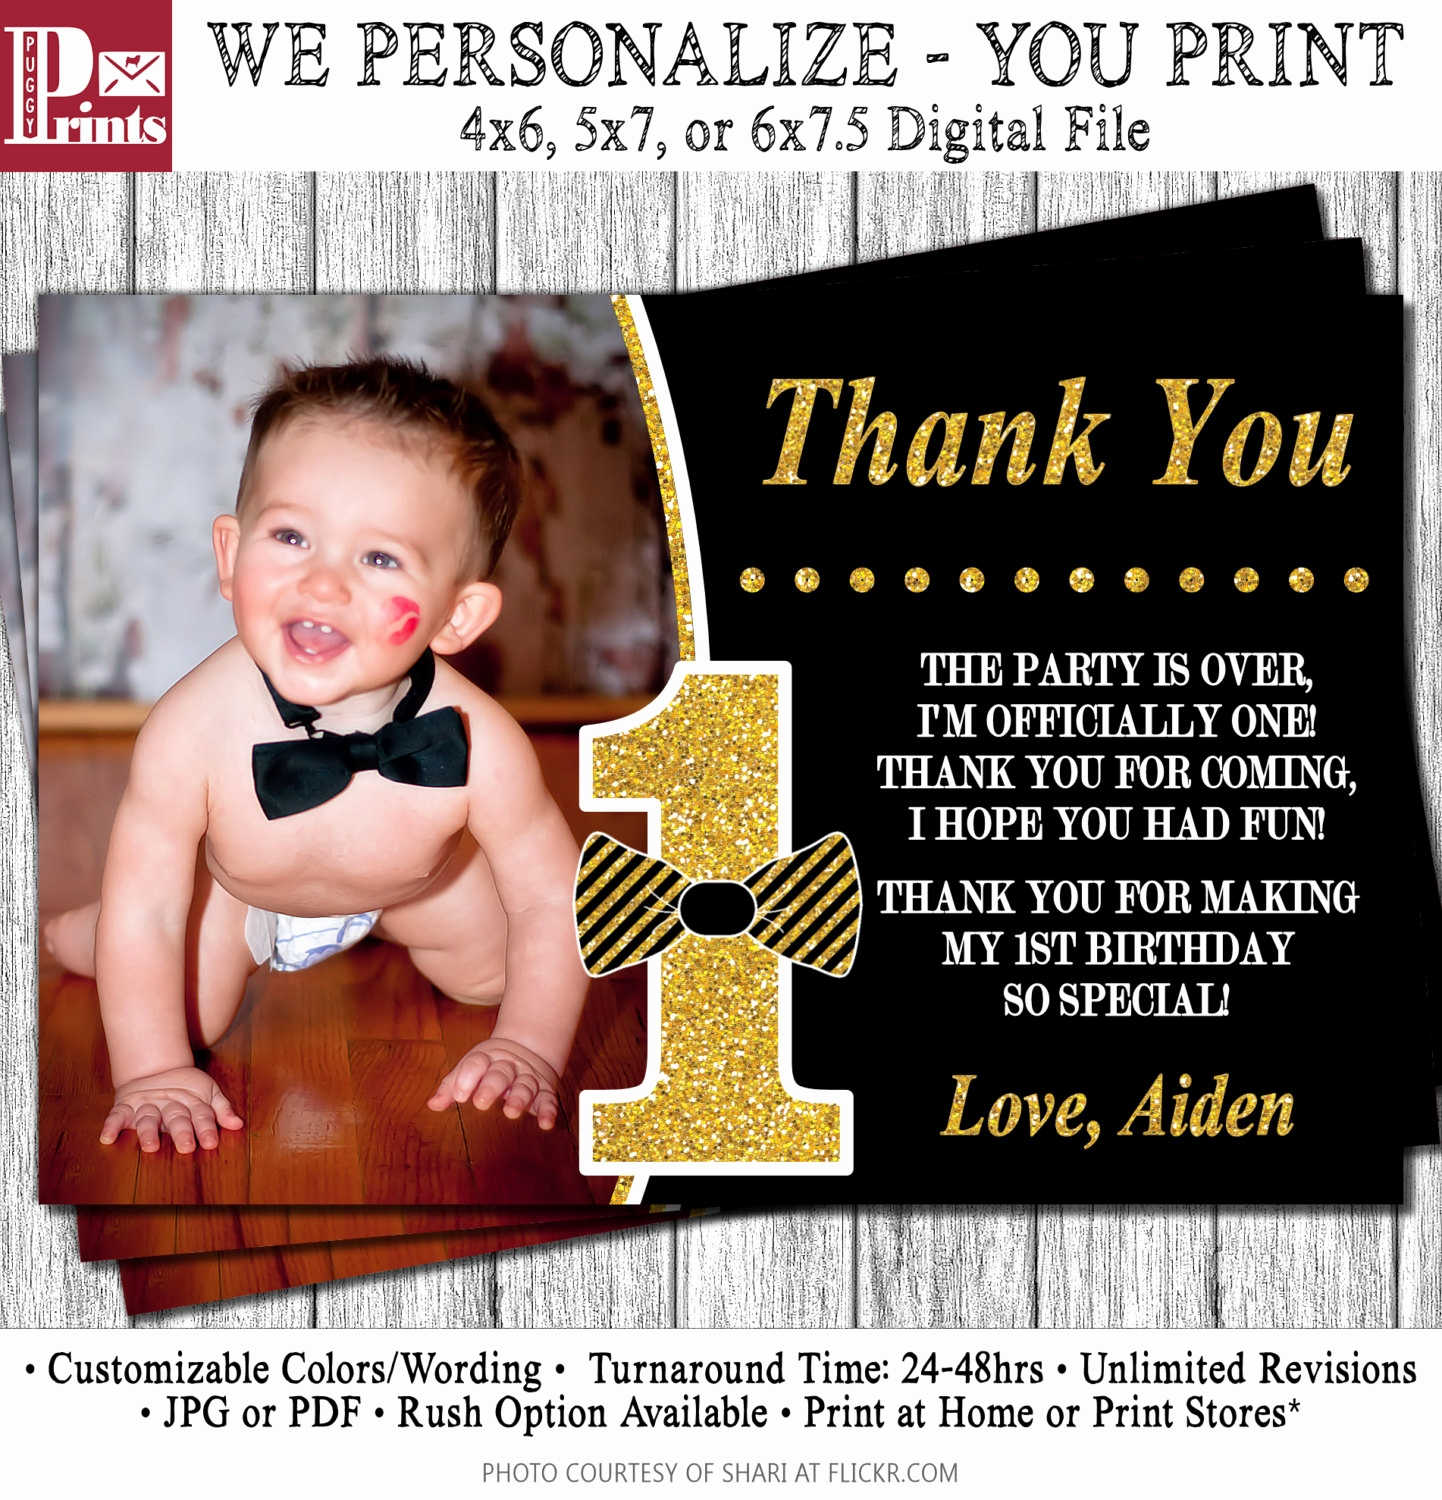 first birthday thank you card wording ; first-birthday-thank-you-card-wording-best-of-mr-onederful-birthday-thank-you-card-mr-e-derful-tuxedo-of-first-birthday-thank-you-card-wording